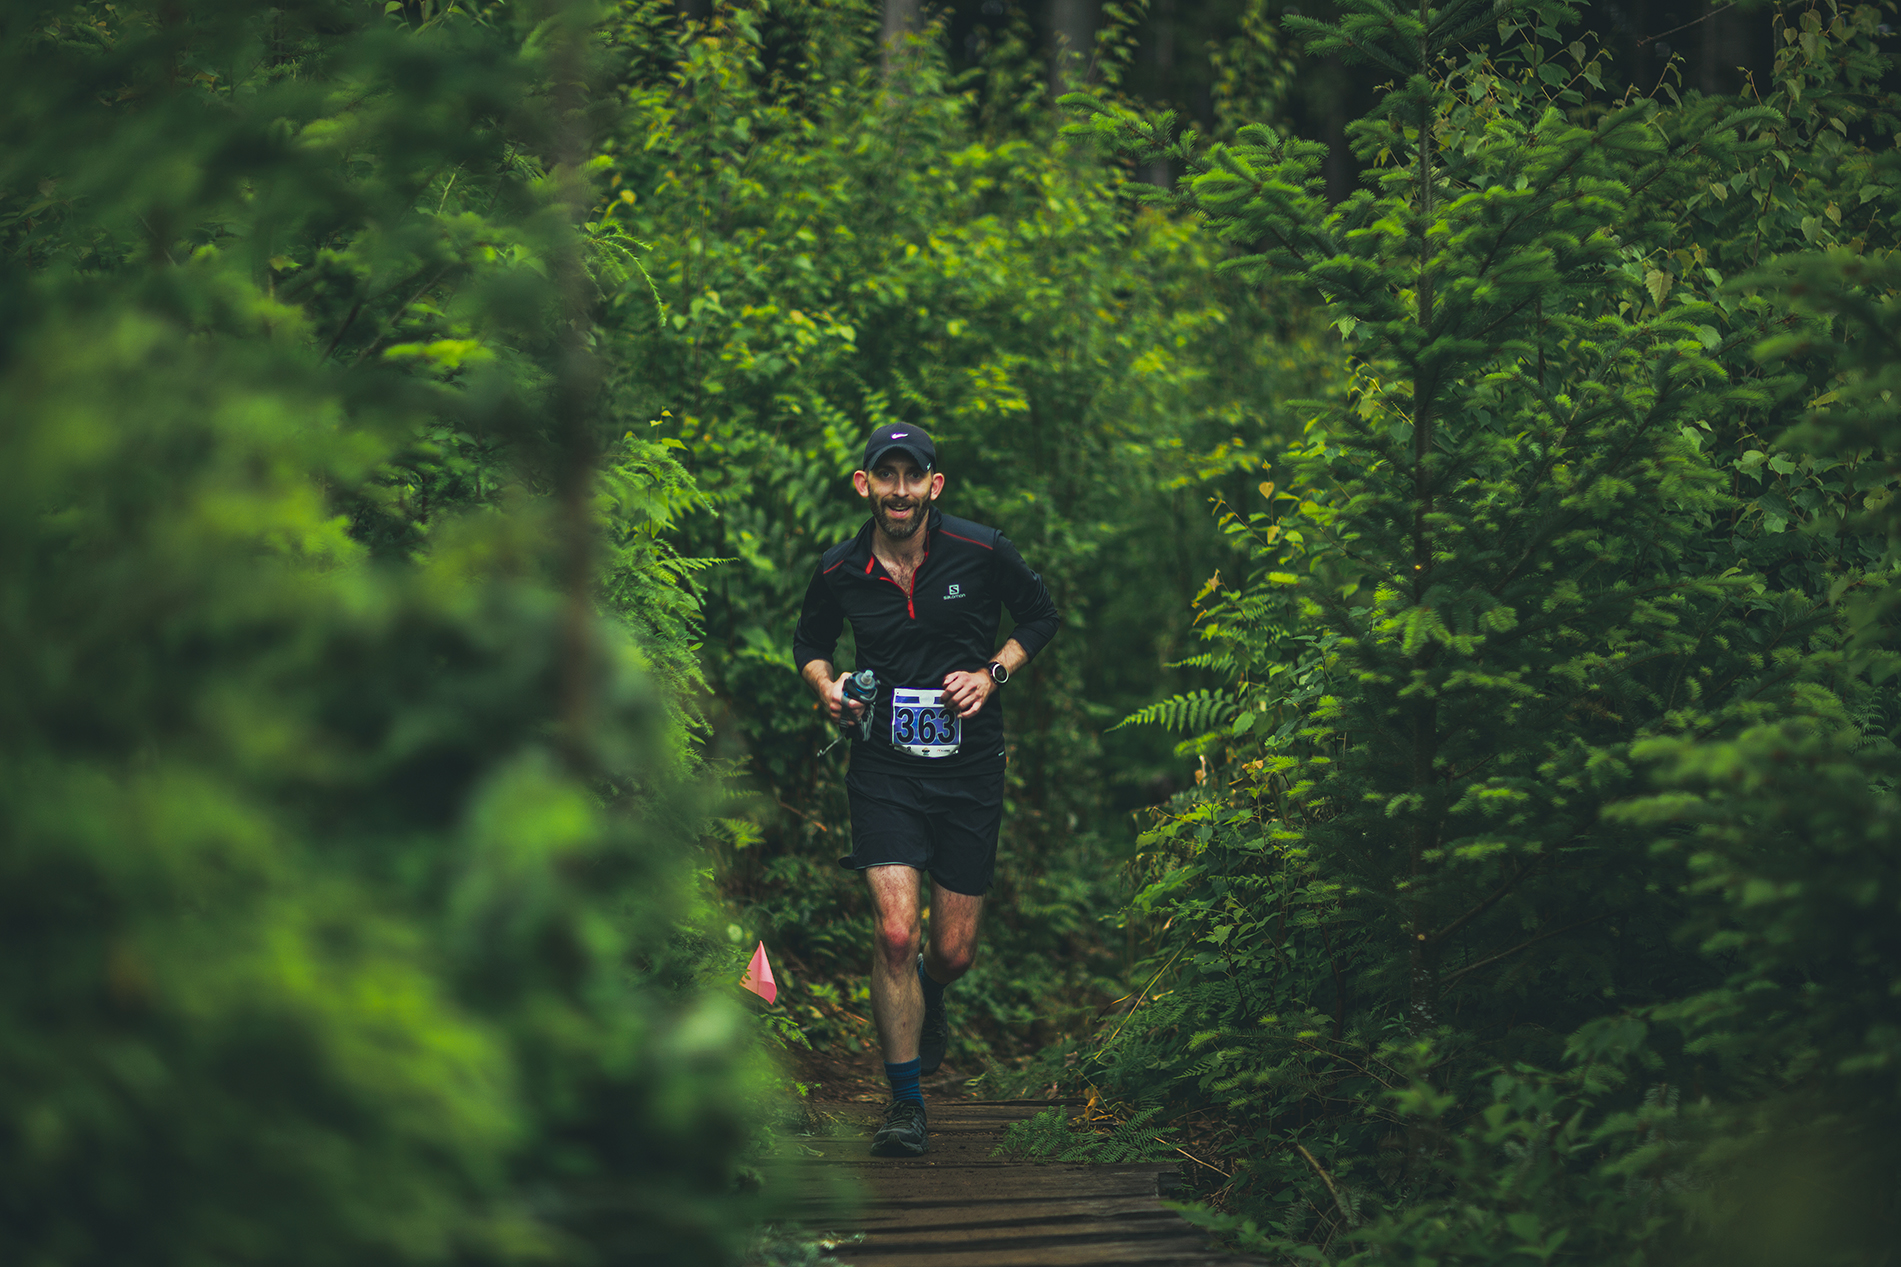 Fraser Valley Trail Races - Bear Mountain - IMG_2396 by Brice Ferre Studio - Vancouver Portrait Adventure and Athlete Photographer.jpg